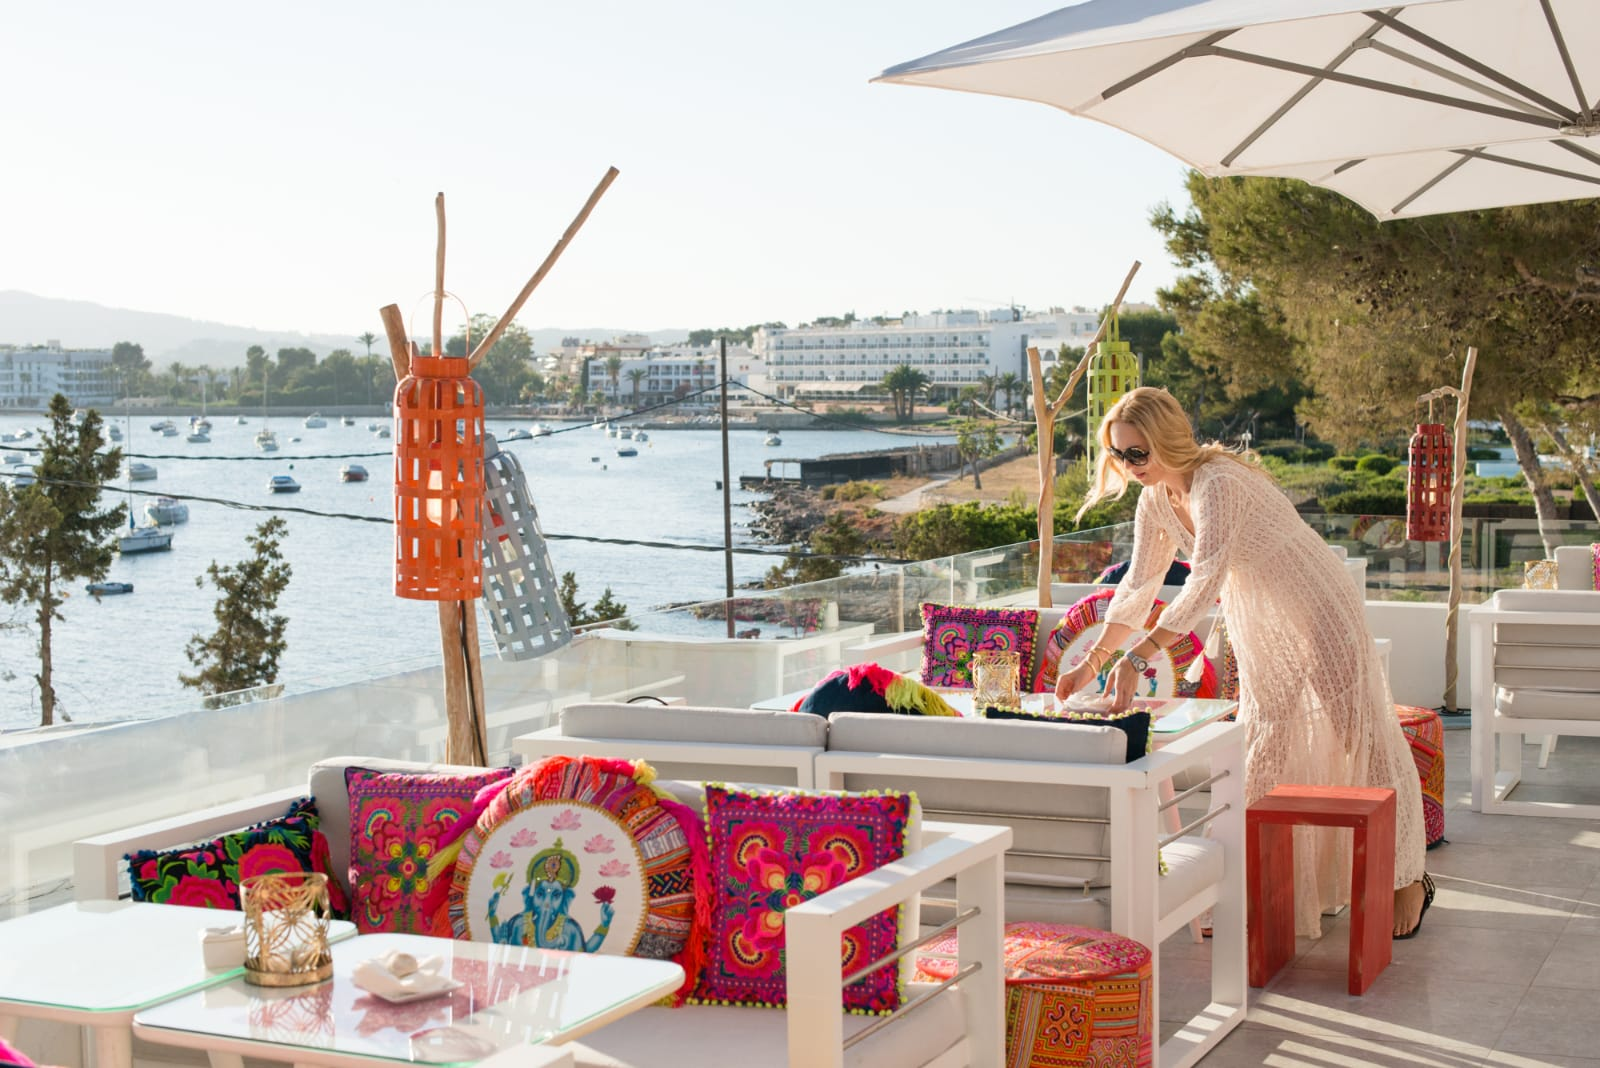 events planner ibiza, obi and the island